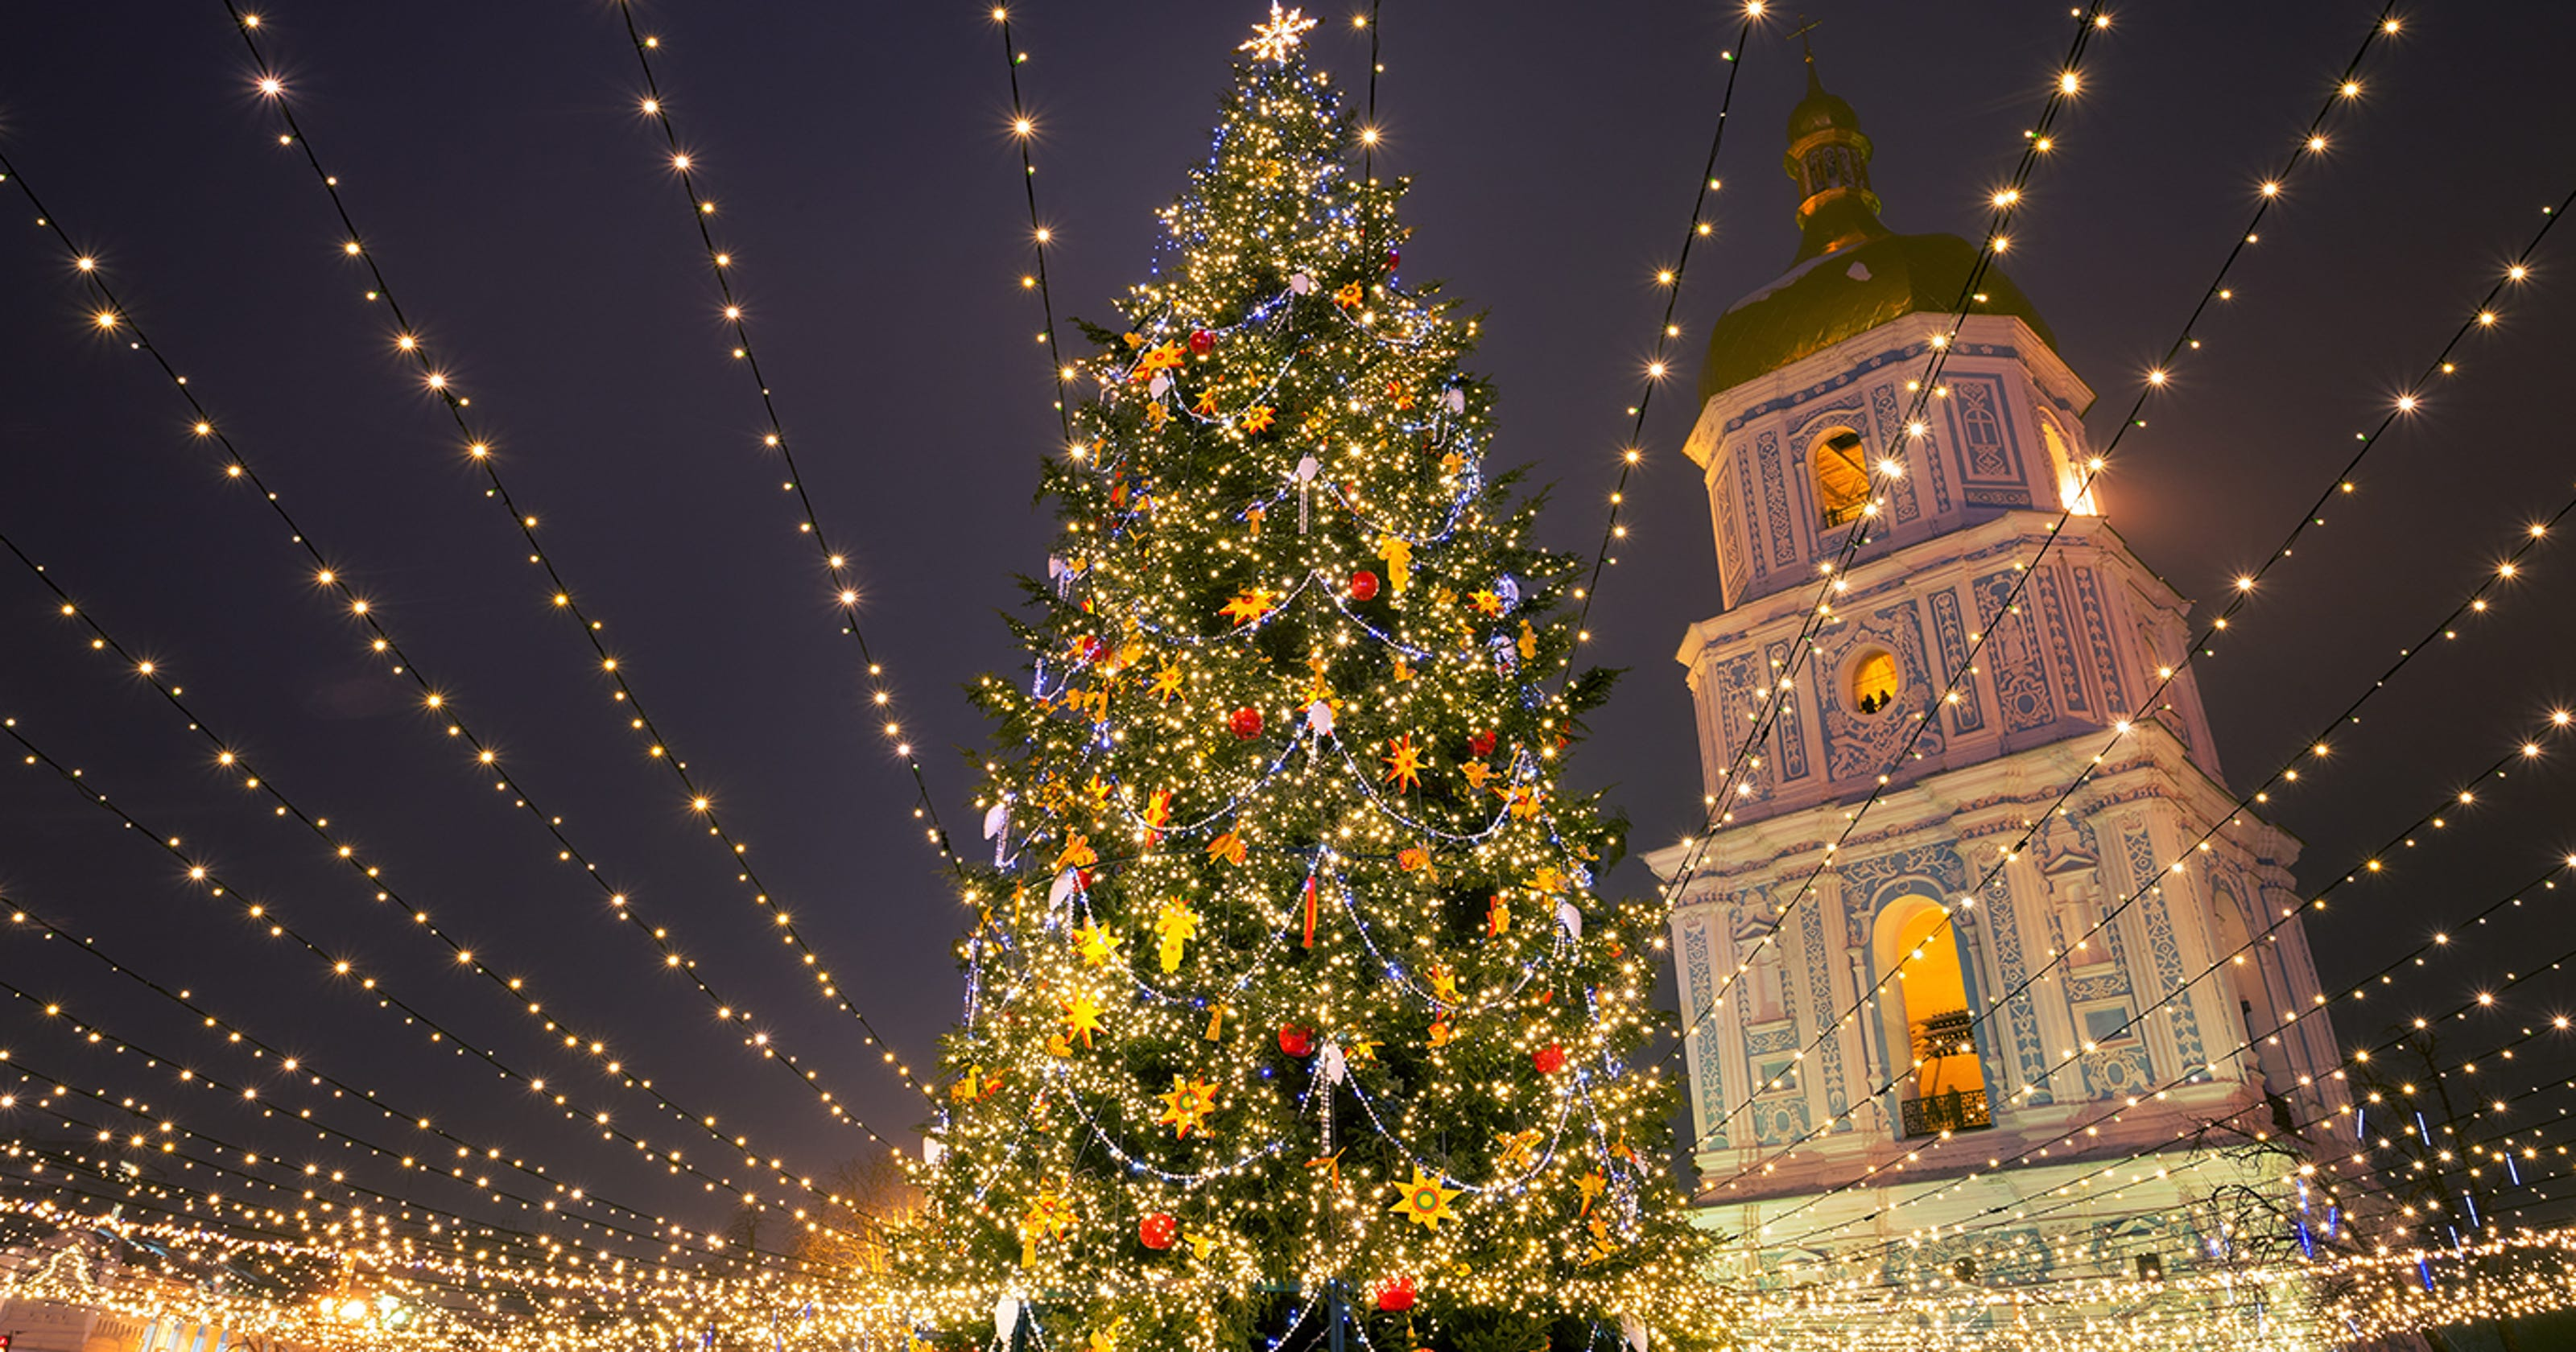 Christmas Light Displays.25 Stunning Christmas Light Displays Around The World